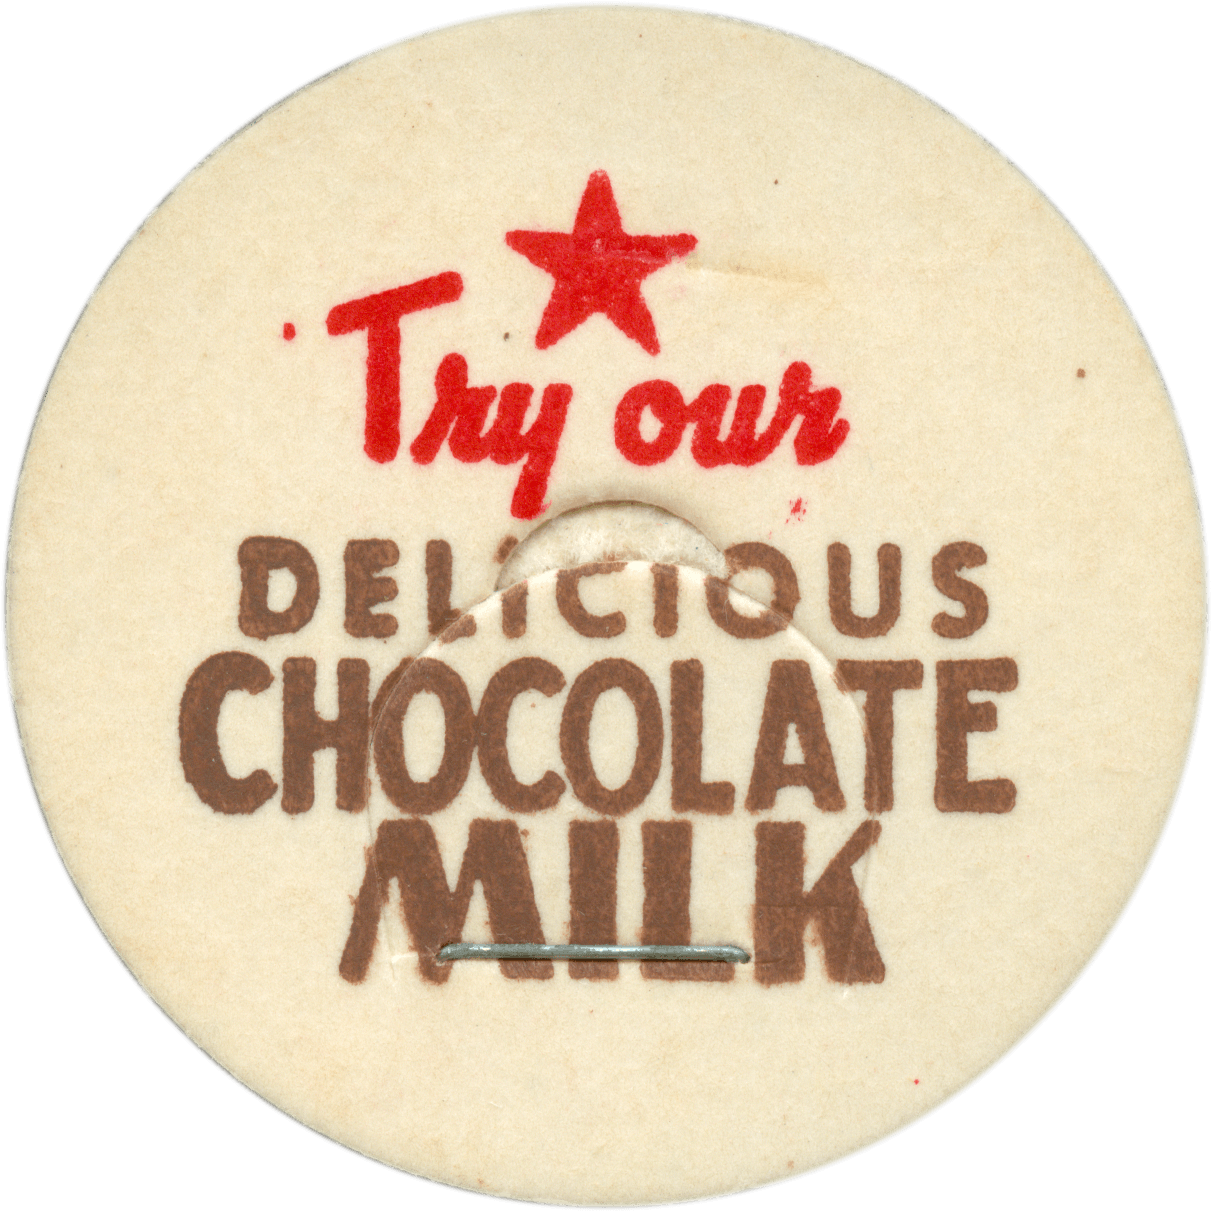 Try Our Delicious Chocolate Milk